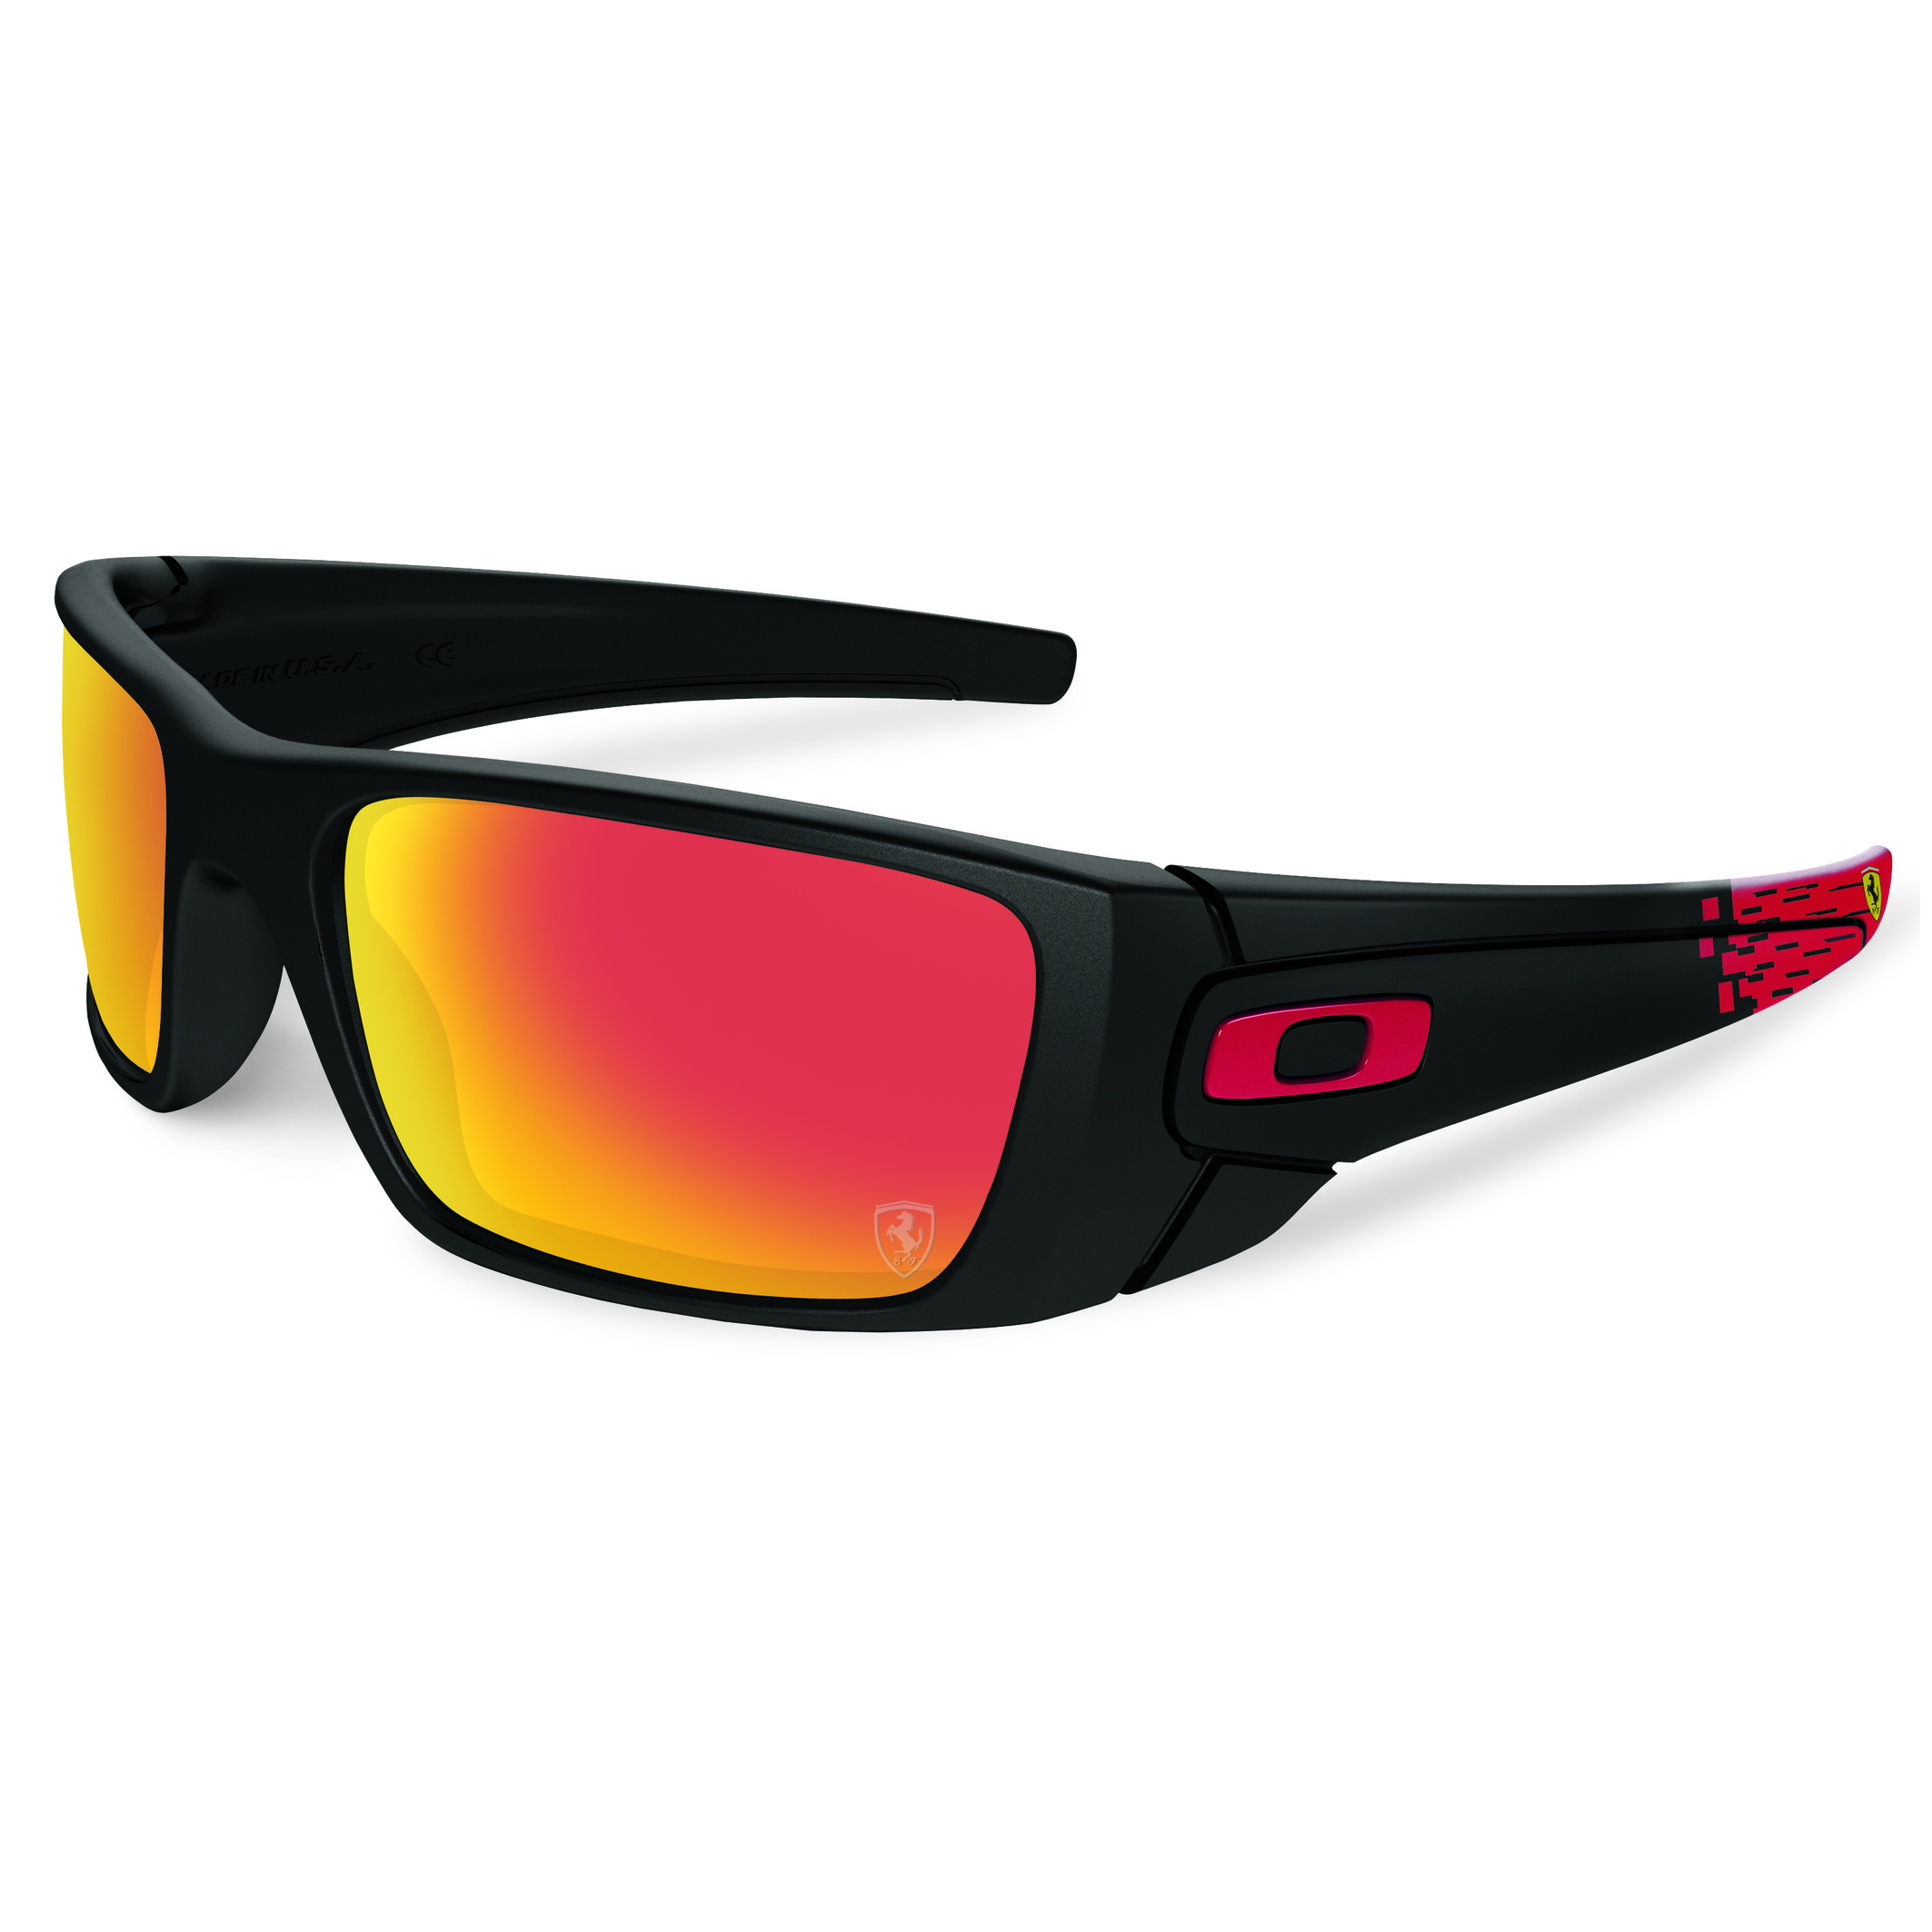 Scuderia Ferrari OAKLEY Fuel Cell Sunglasses